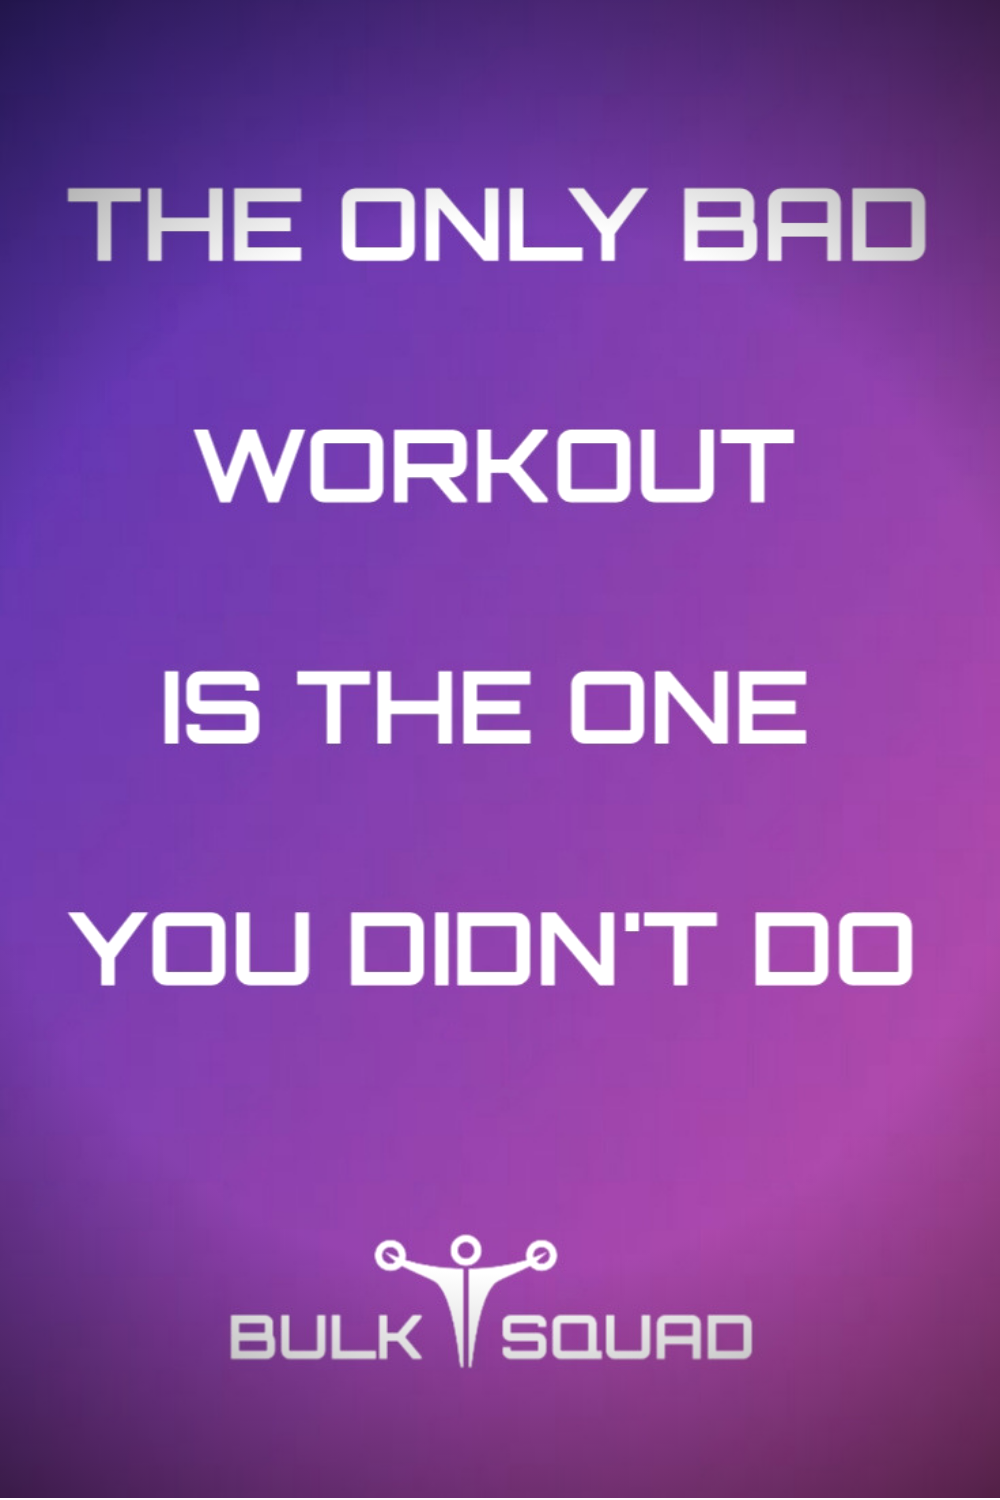 The only bad WORKOUT is the one you didn't do. #GymMotivation#BulkSquad